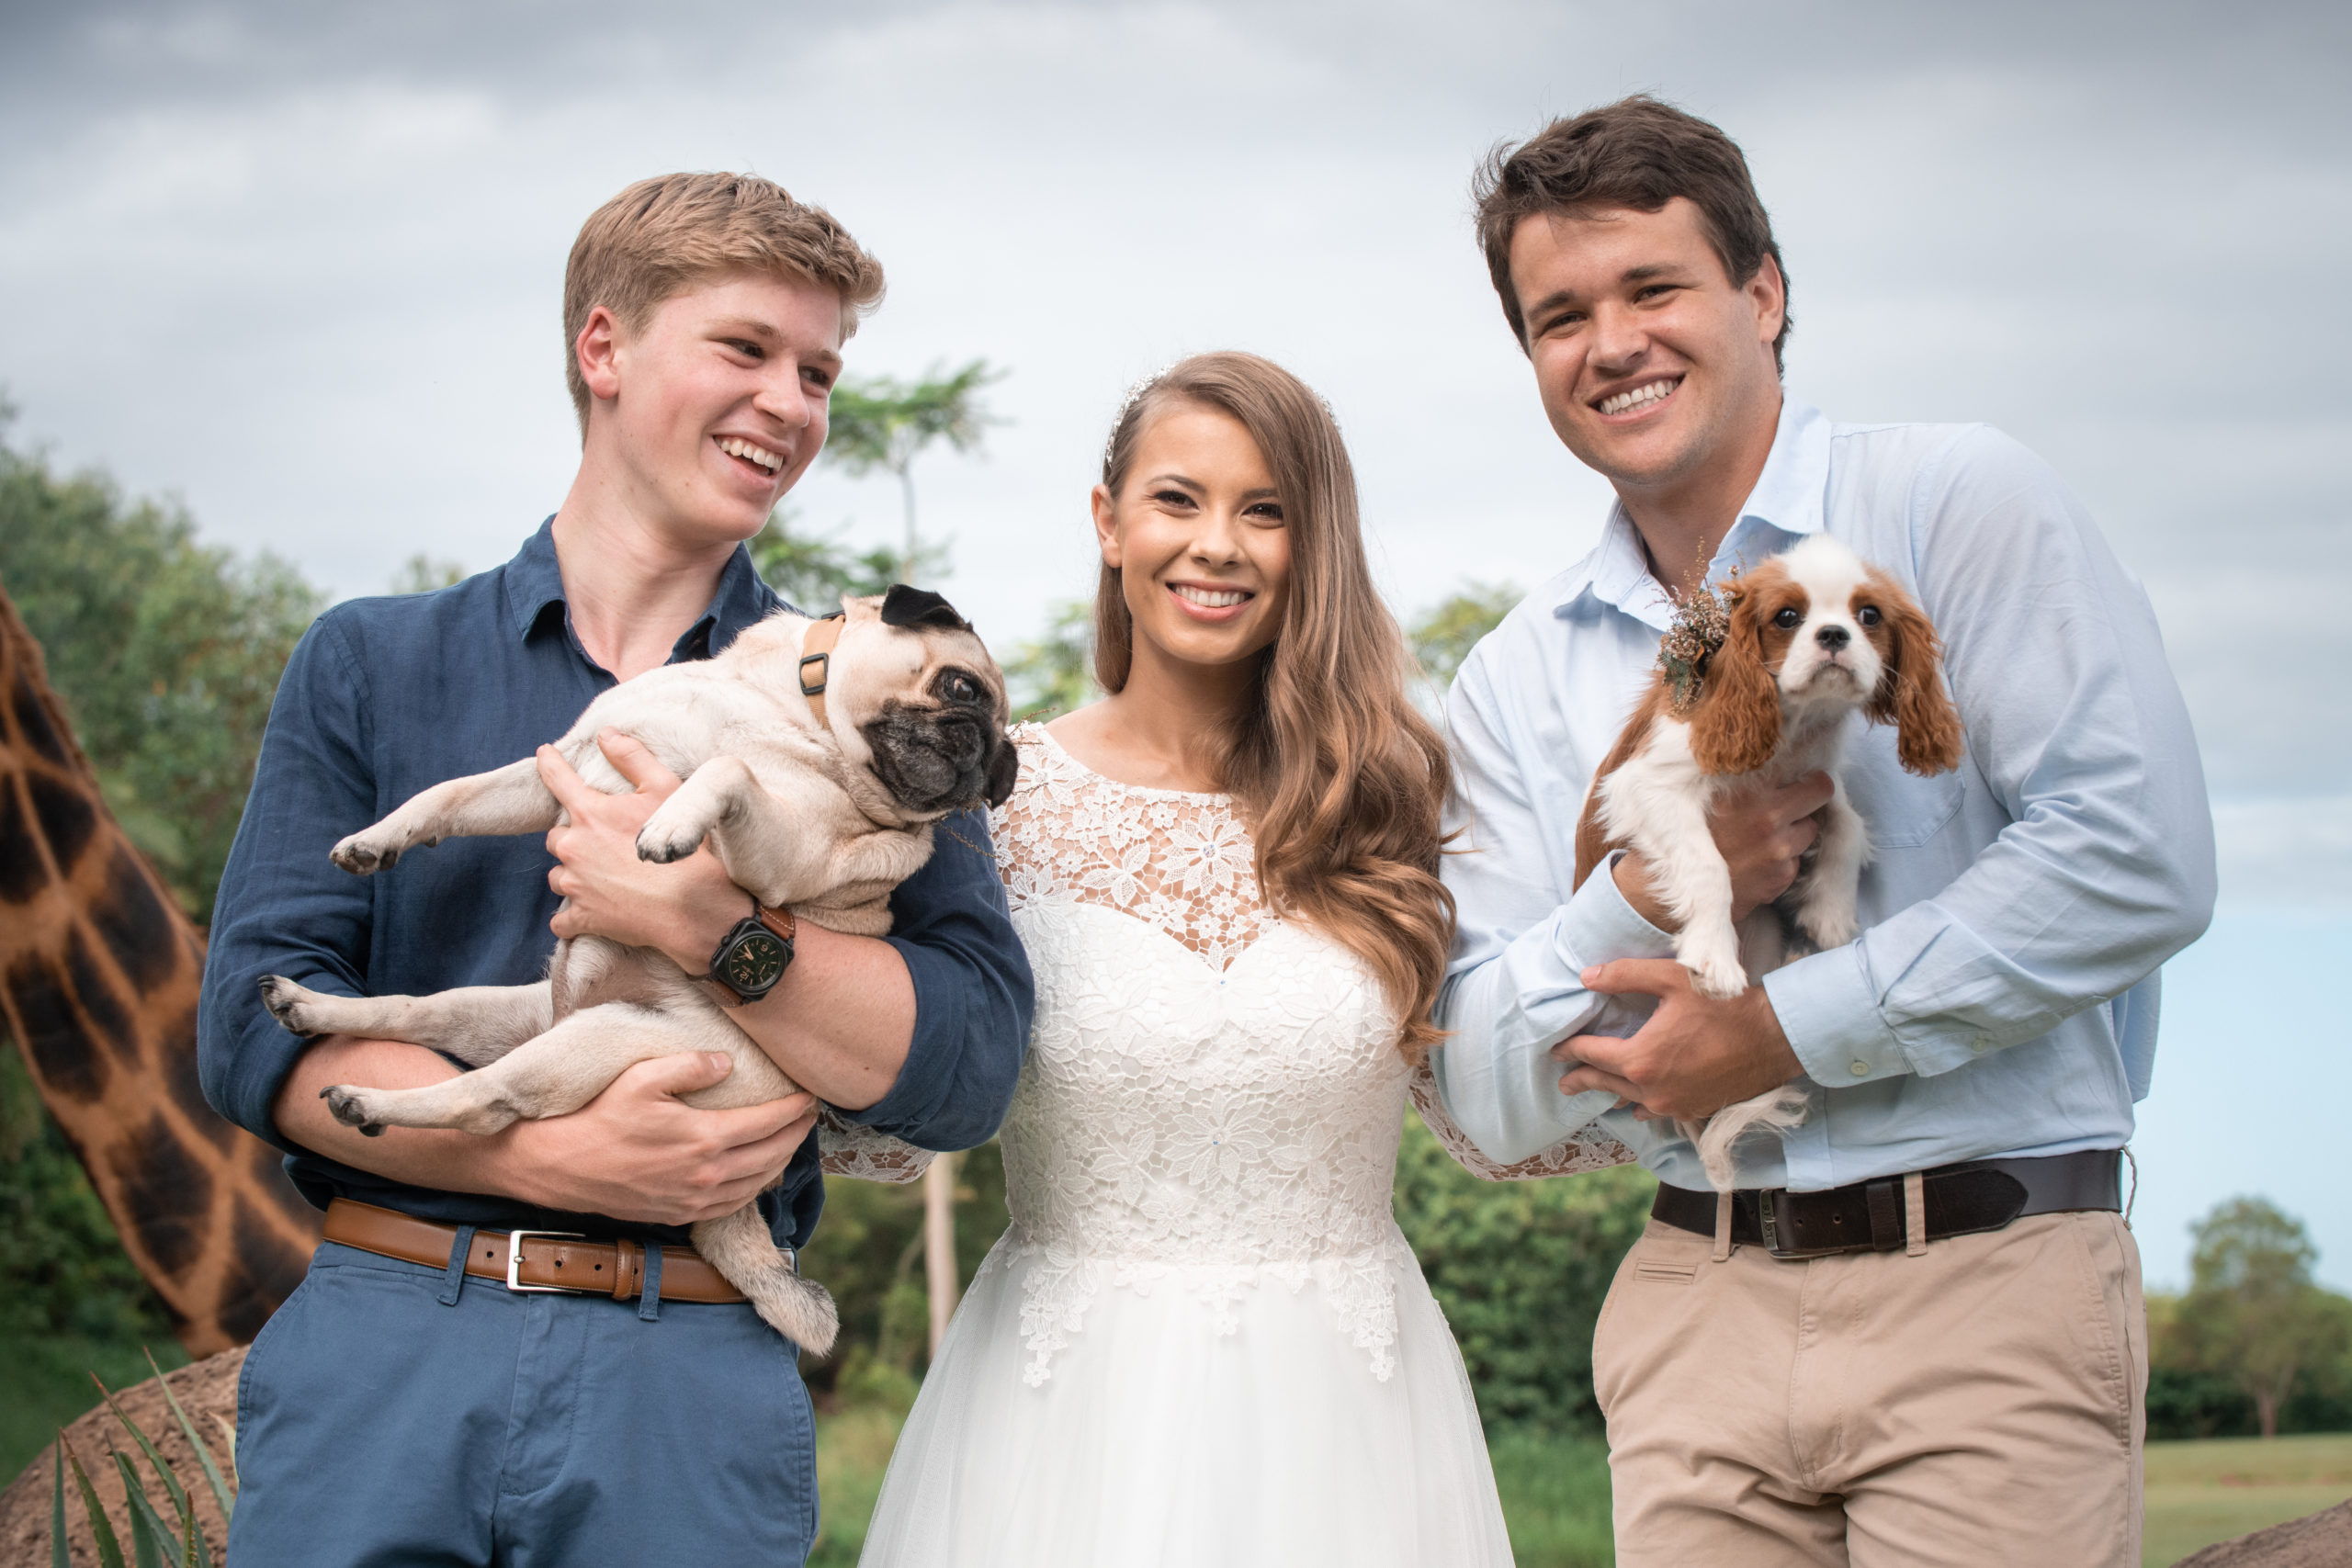 Chandler Powell and Bindi Irwin and Robert Iwin. Chandler is holding 'piggy' and Robert is holding 'Stella'